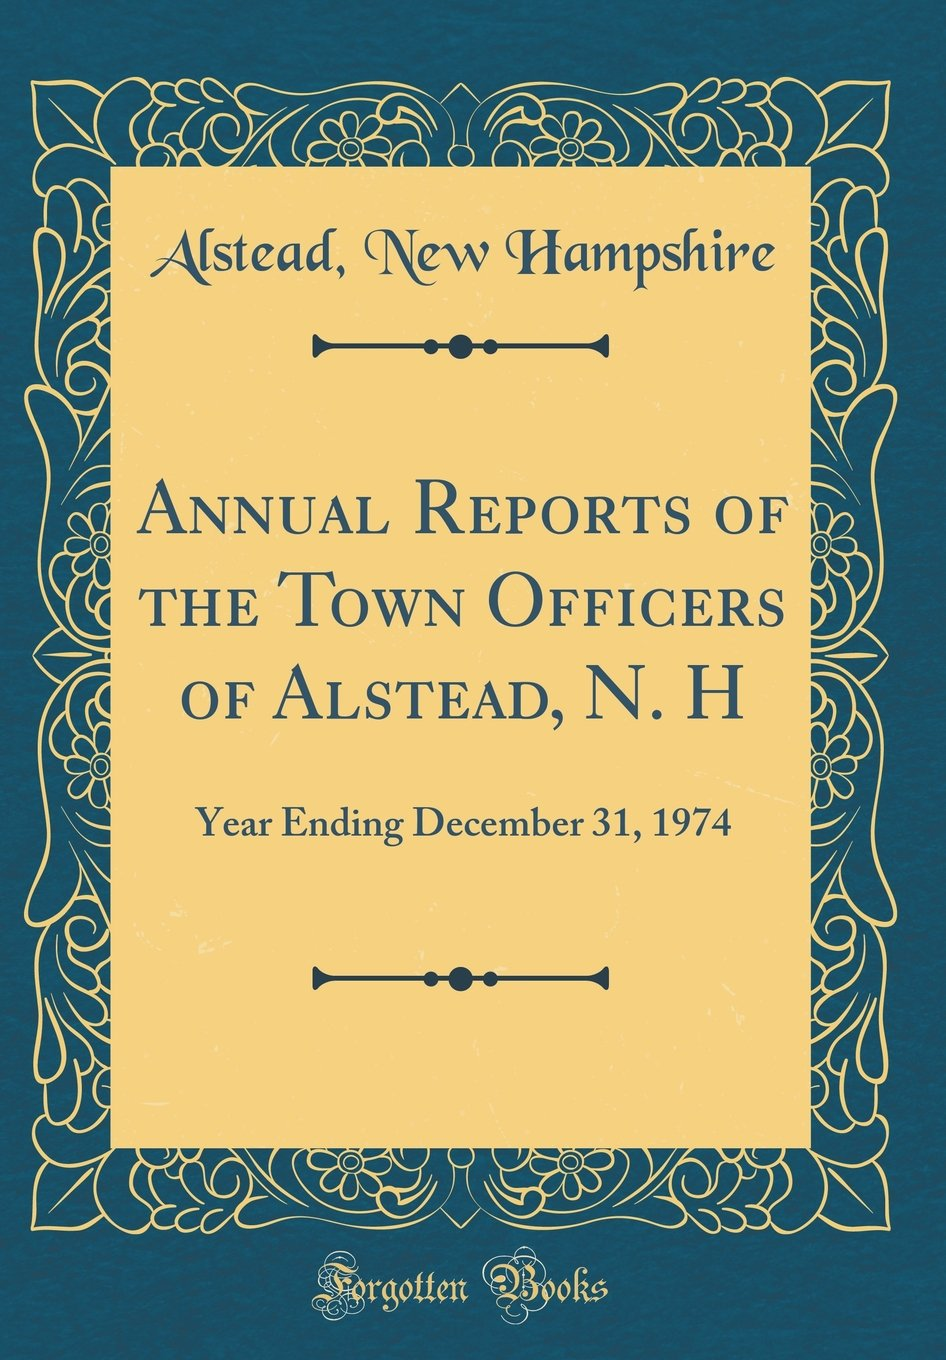 Annual Reports of the Town Officers of Alstead, N. H: Year Ending December 31, 1974 (Classic Reprint) PDF